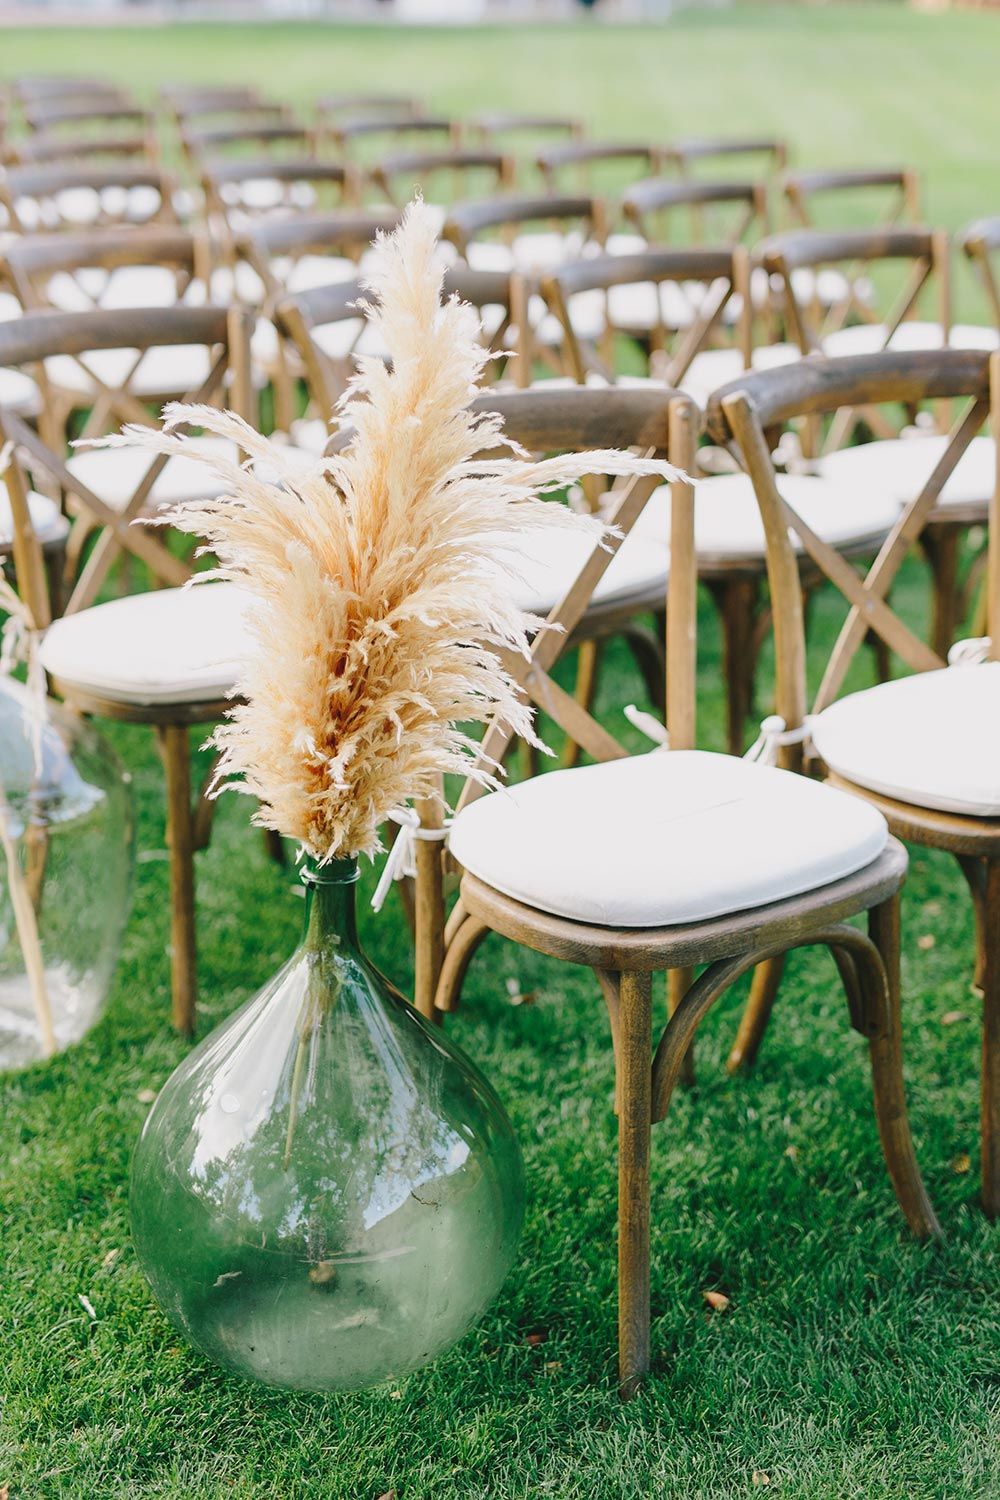 rose-and-pampas-grass-wedding-at-triunfo-creek-vineyard-jake-and-necia-photography-08.jpg